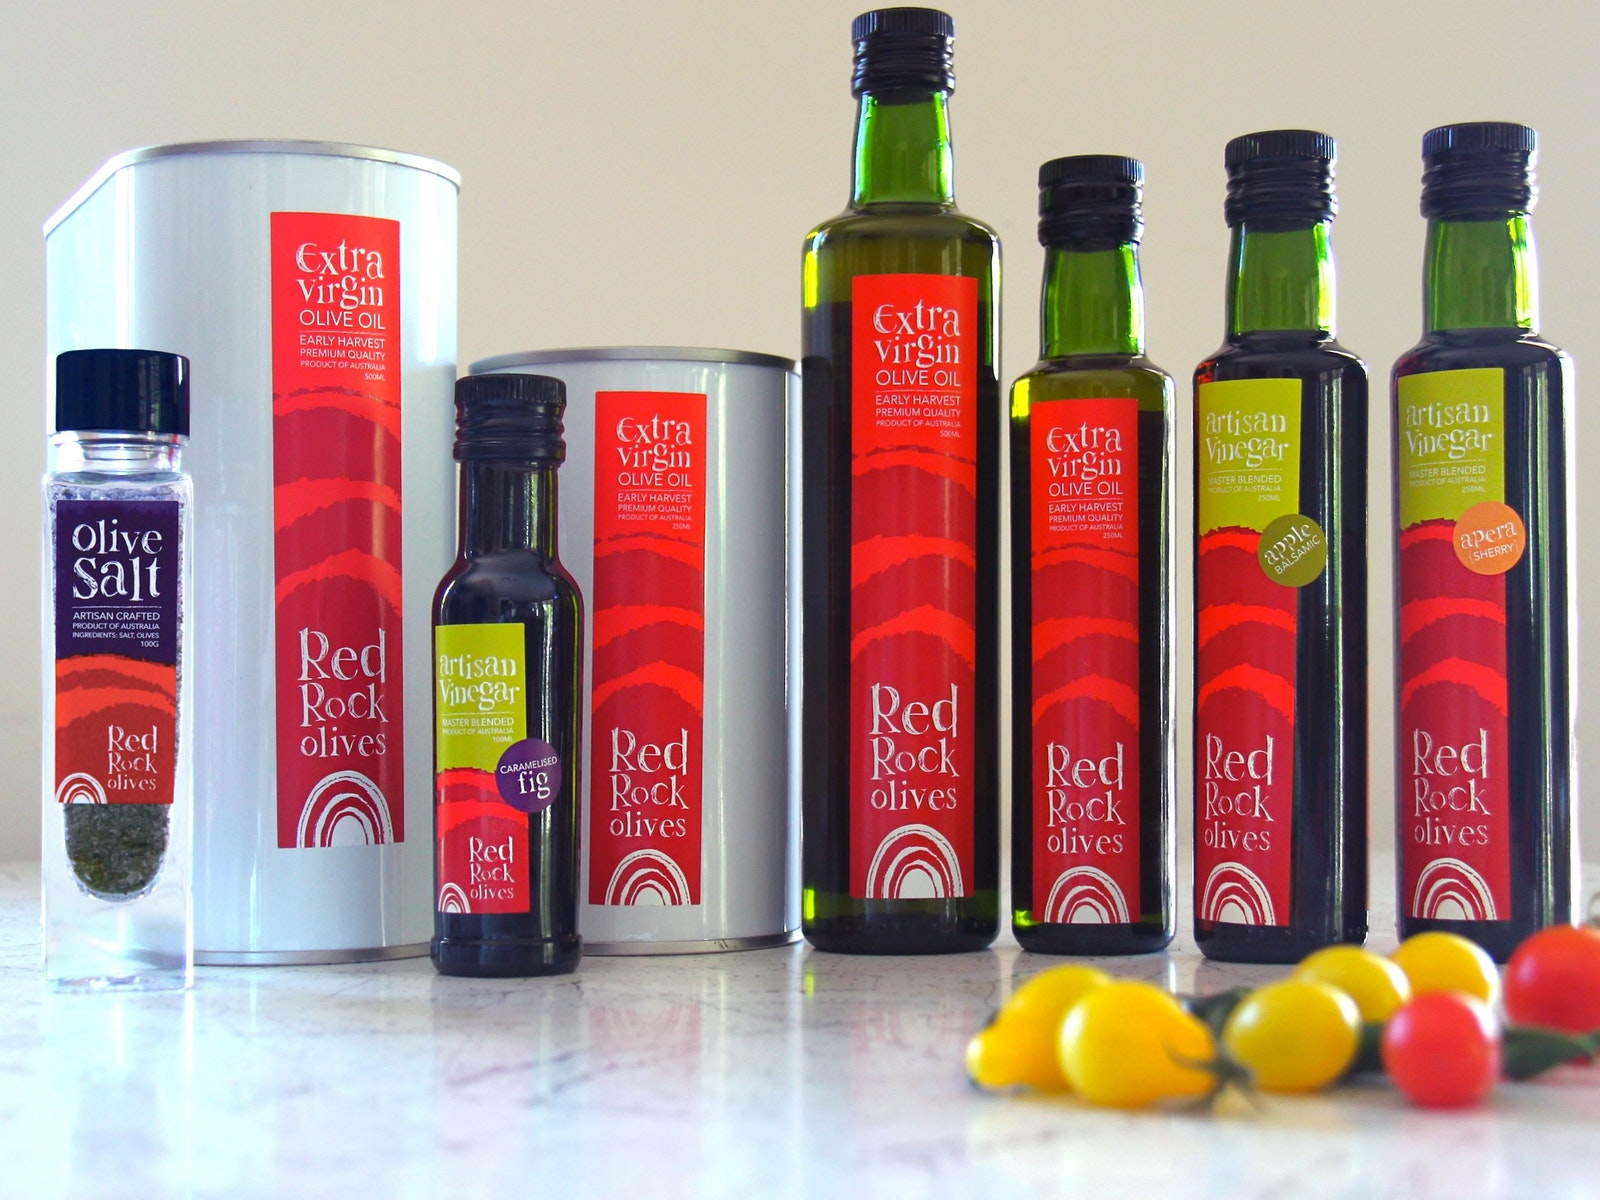 Red Rock Olive products